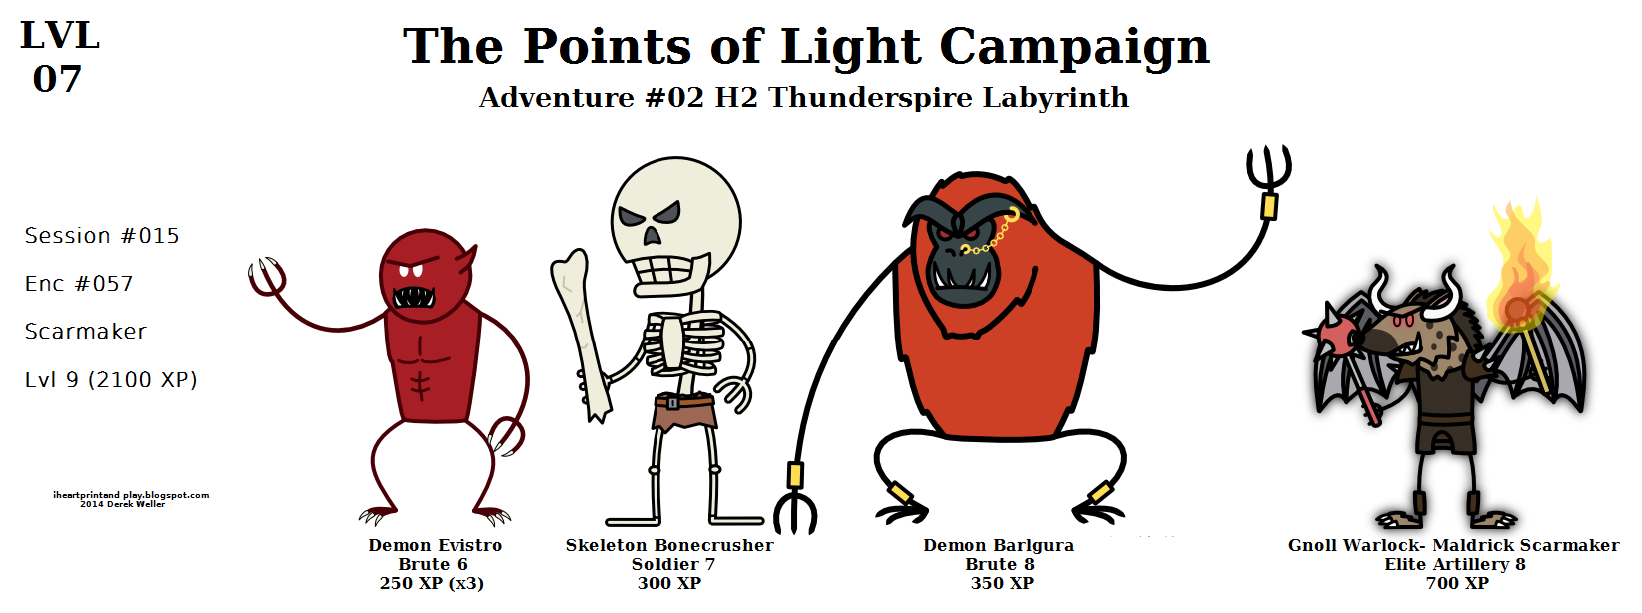 Points_of_Light__003.057_Scarmaker.png